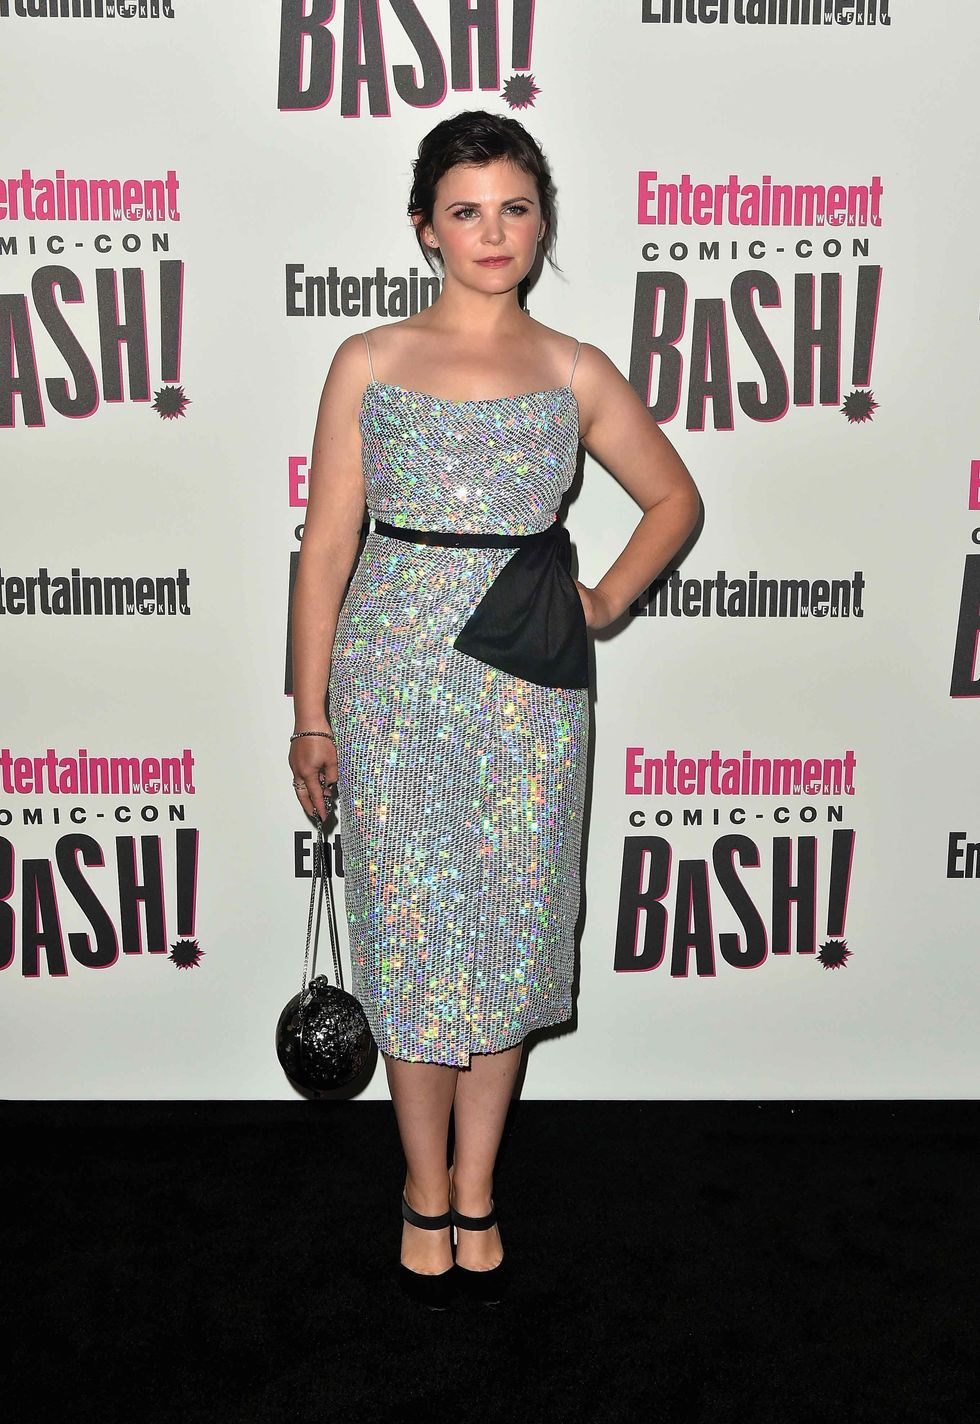 Ginnifer Goodwin in a sparkly spaghetti strap dress